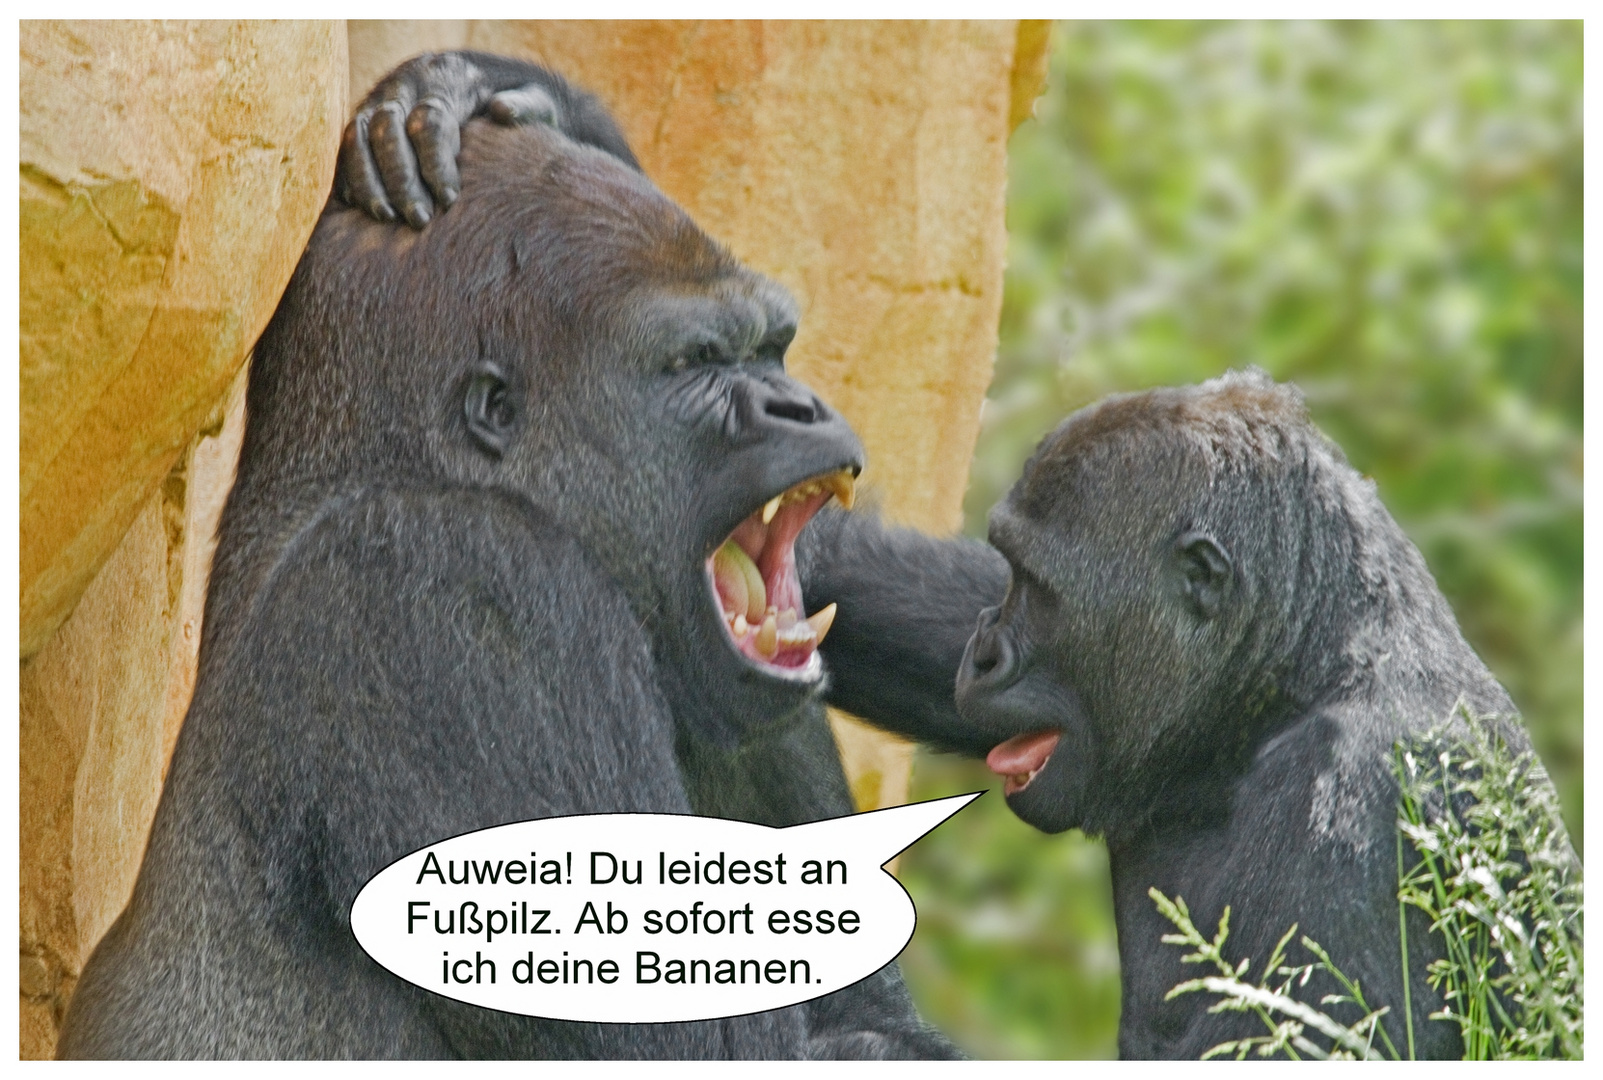 gorilla stellt diagnose